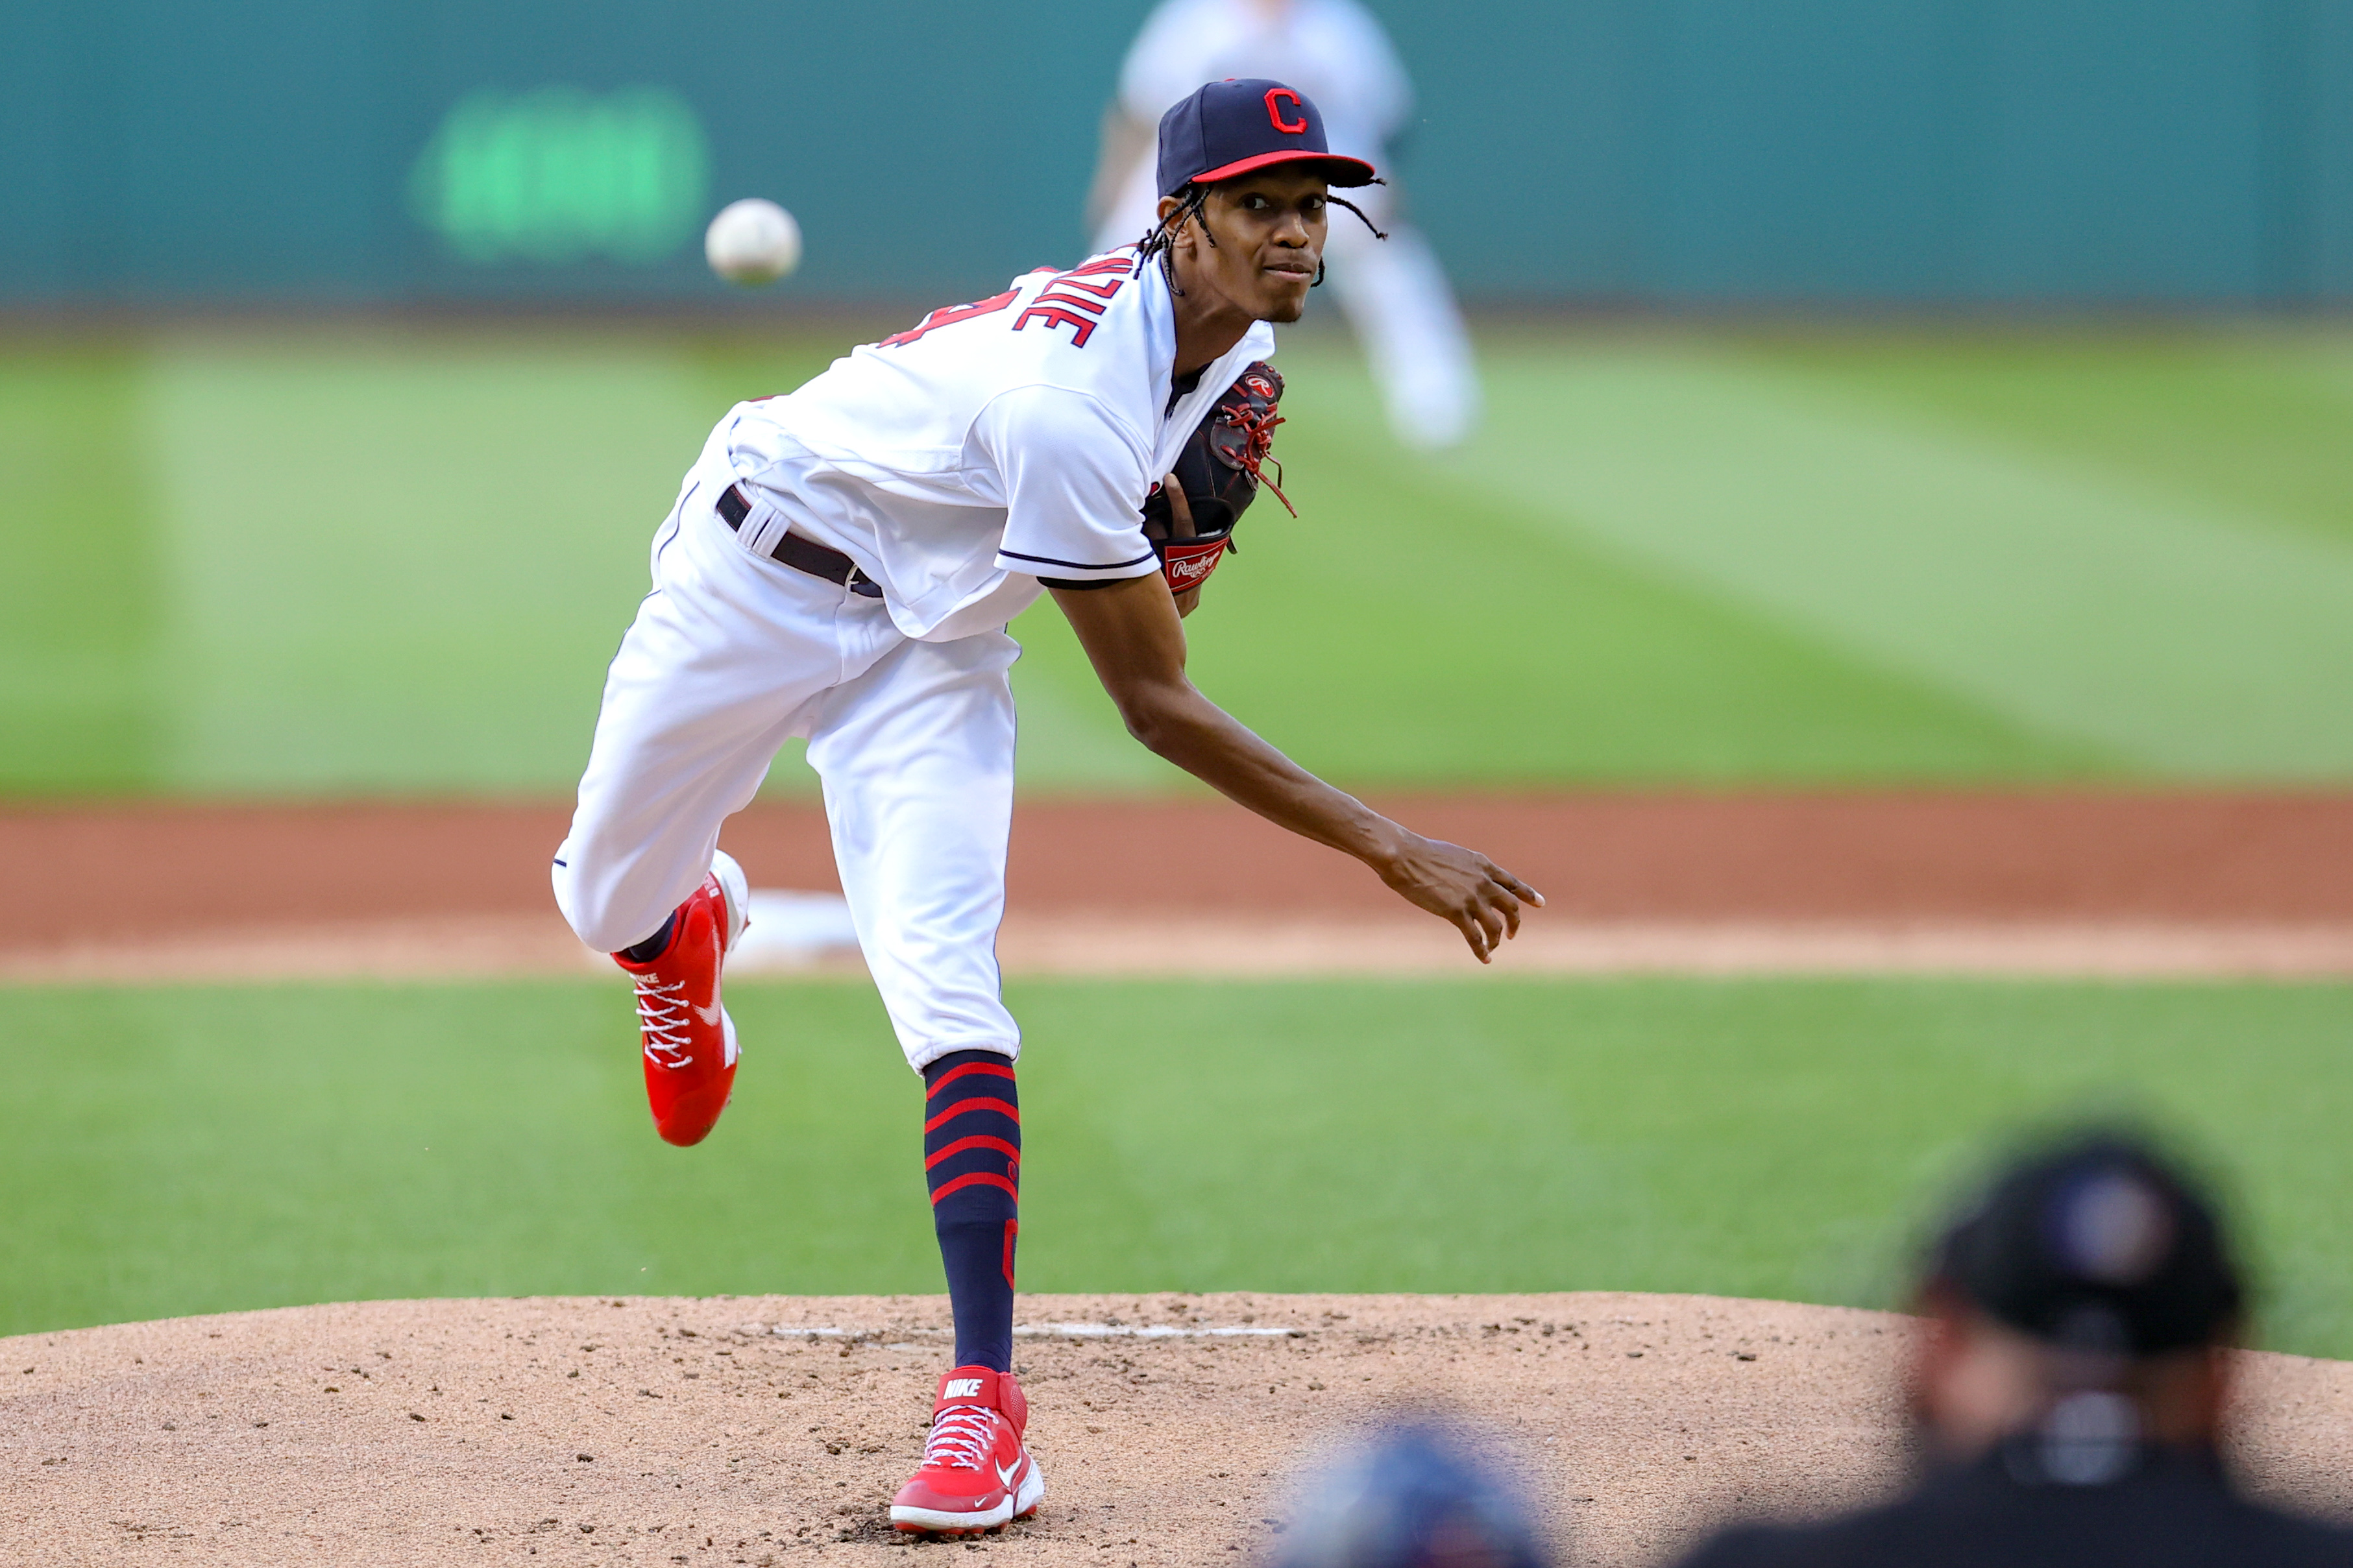 Cleveland Indians pitcher Triston McKenzie (24) delivers a pitch to the plate during the second inning of the Major League Baseball game between the Minnesota Twins and Cleveland Indians on September 8, 2021, at Progressive Field in Cleveland, OH.